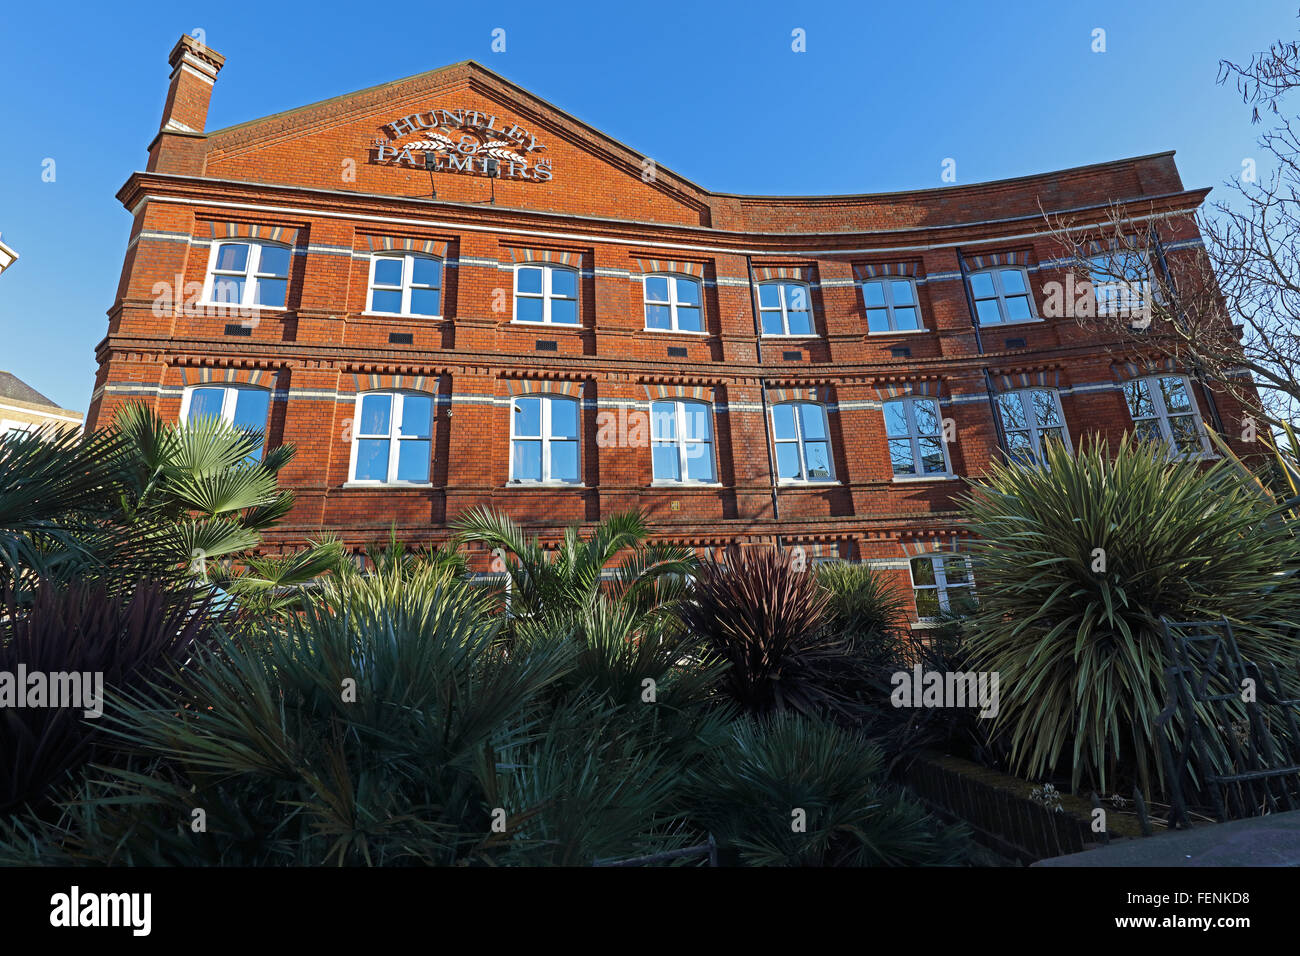 The front of the Huntley and Palmer's building, built in red brick with a chimney at one end and many windows - Stock Image